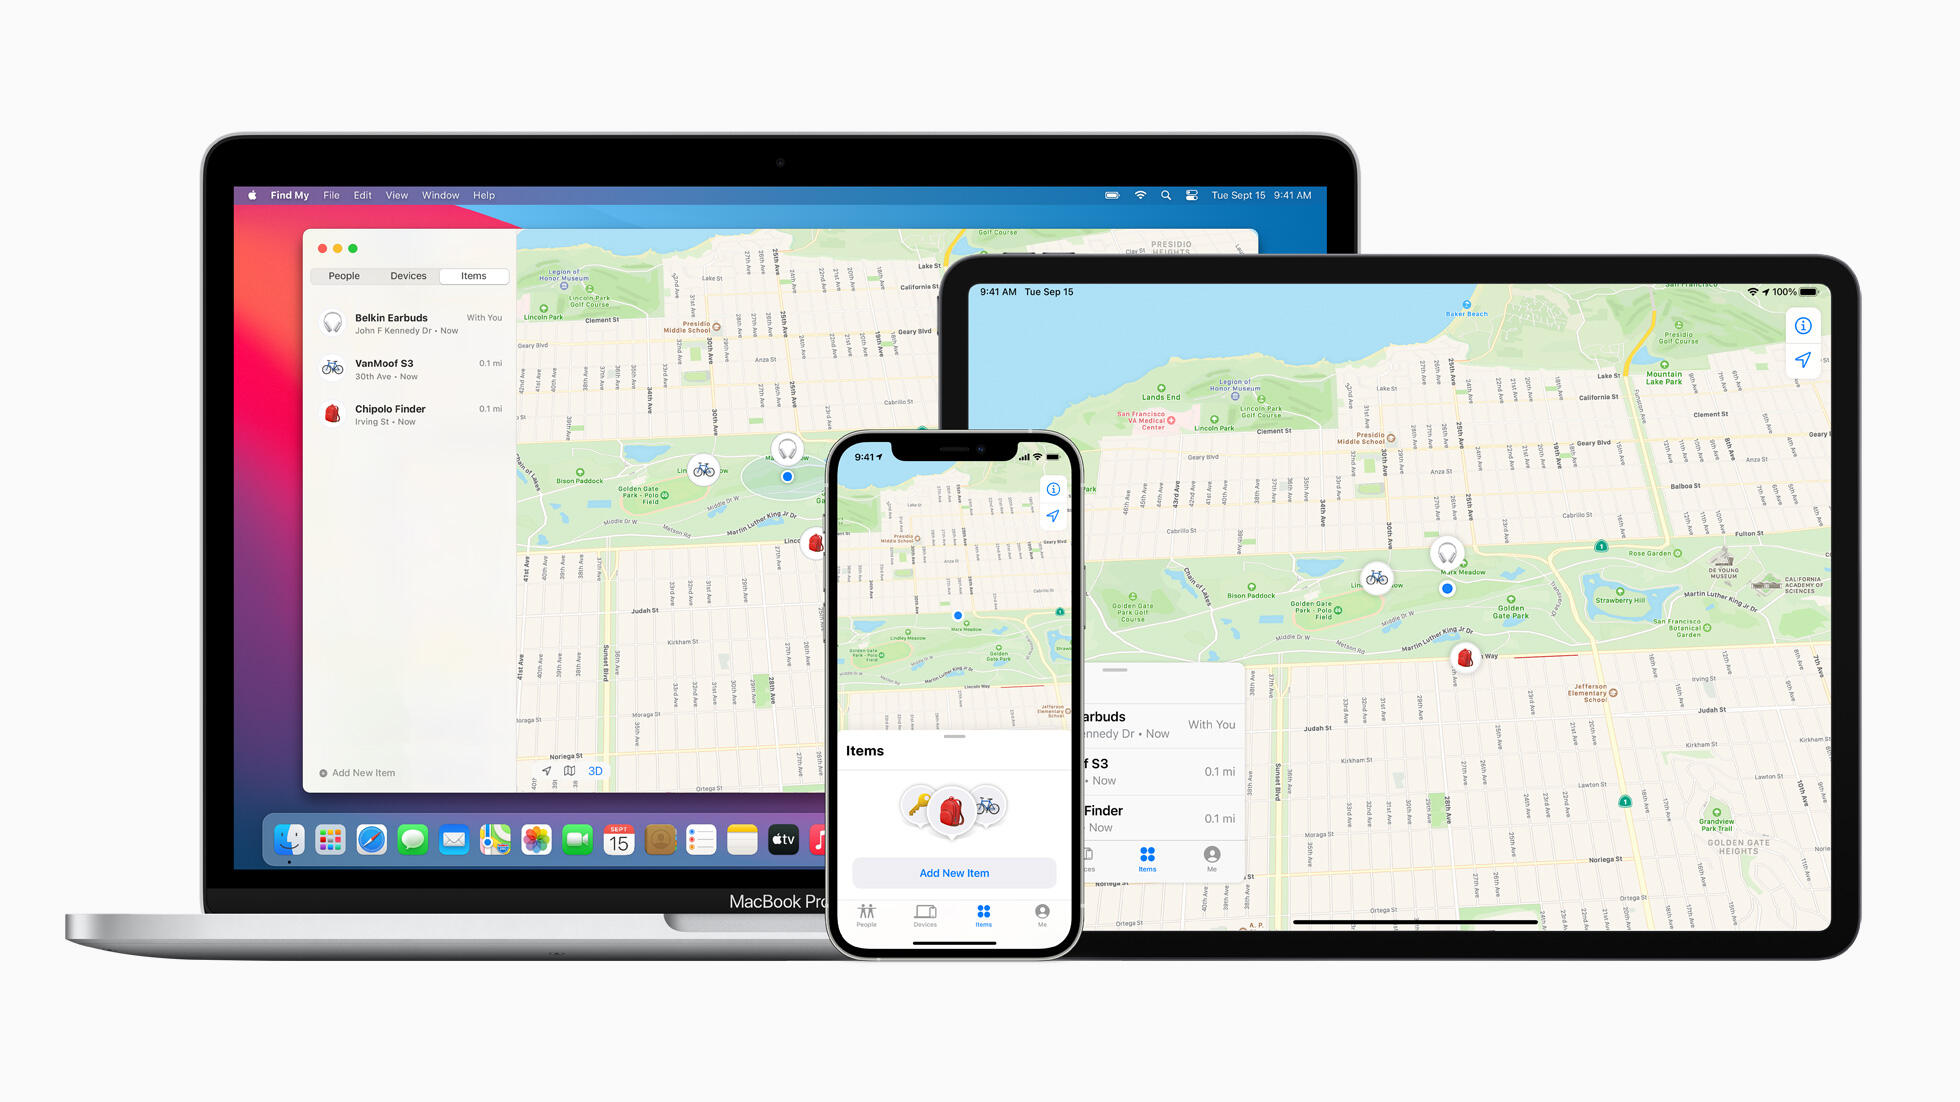 apple-find-my-network-now-offers-new-find-third-party-experiences-macbookpro-ipadpro-iphone12pro-040721